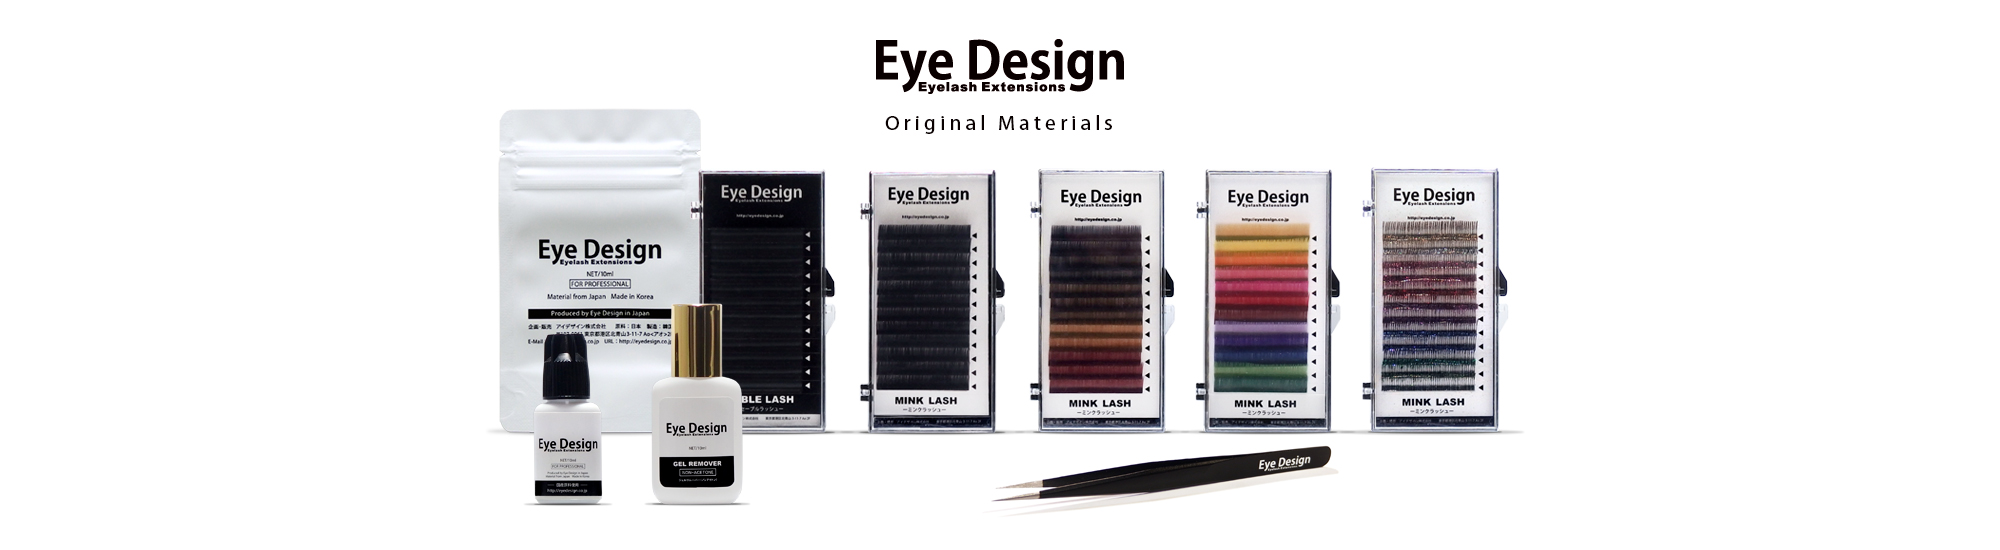 Eye Design Original Materials